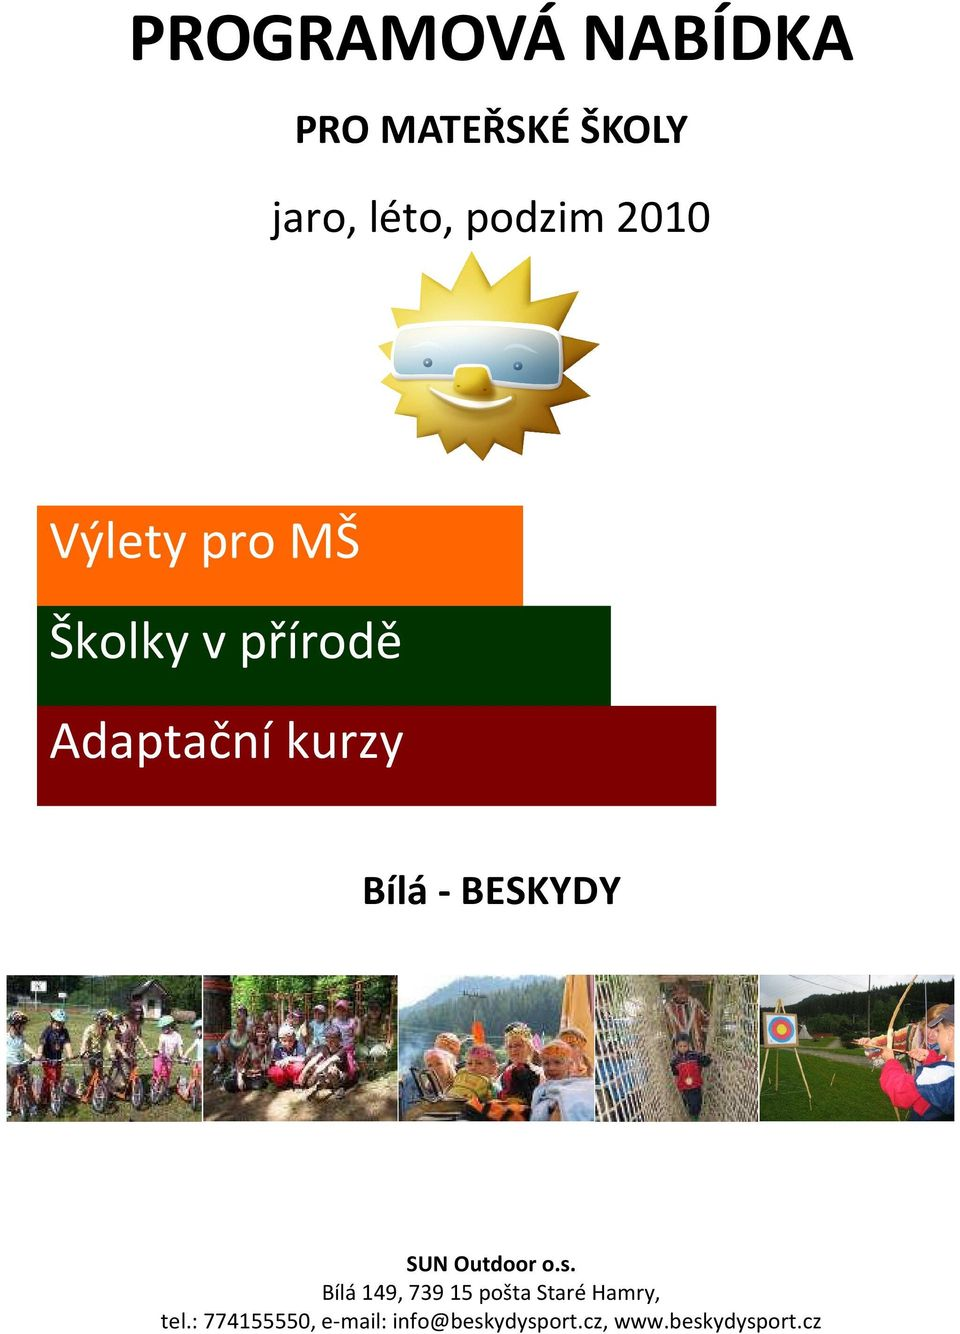 BESKYDY SUN Outdoor o.s.